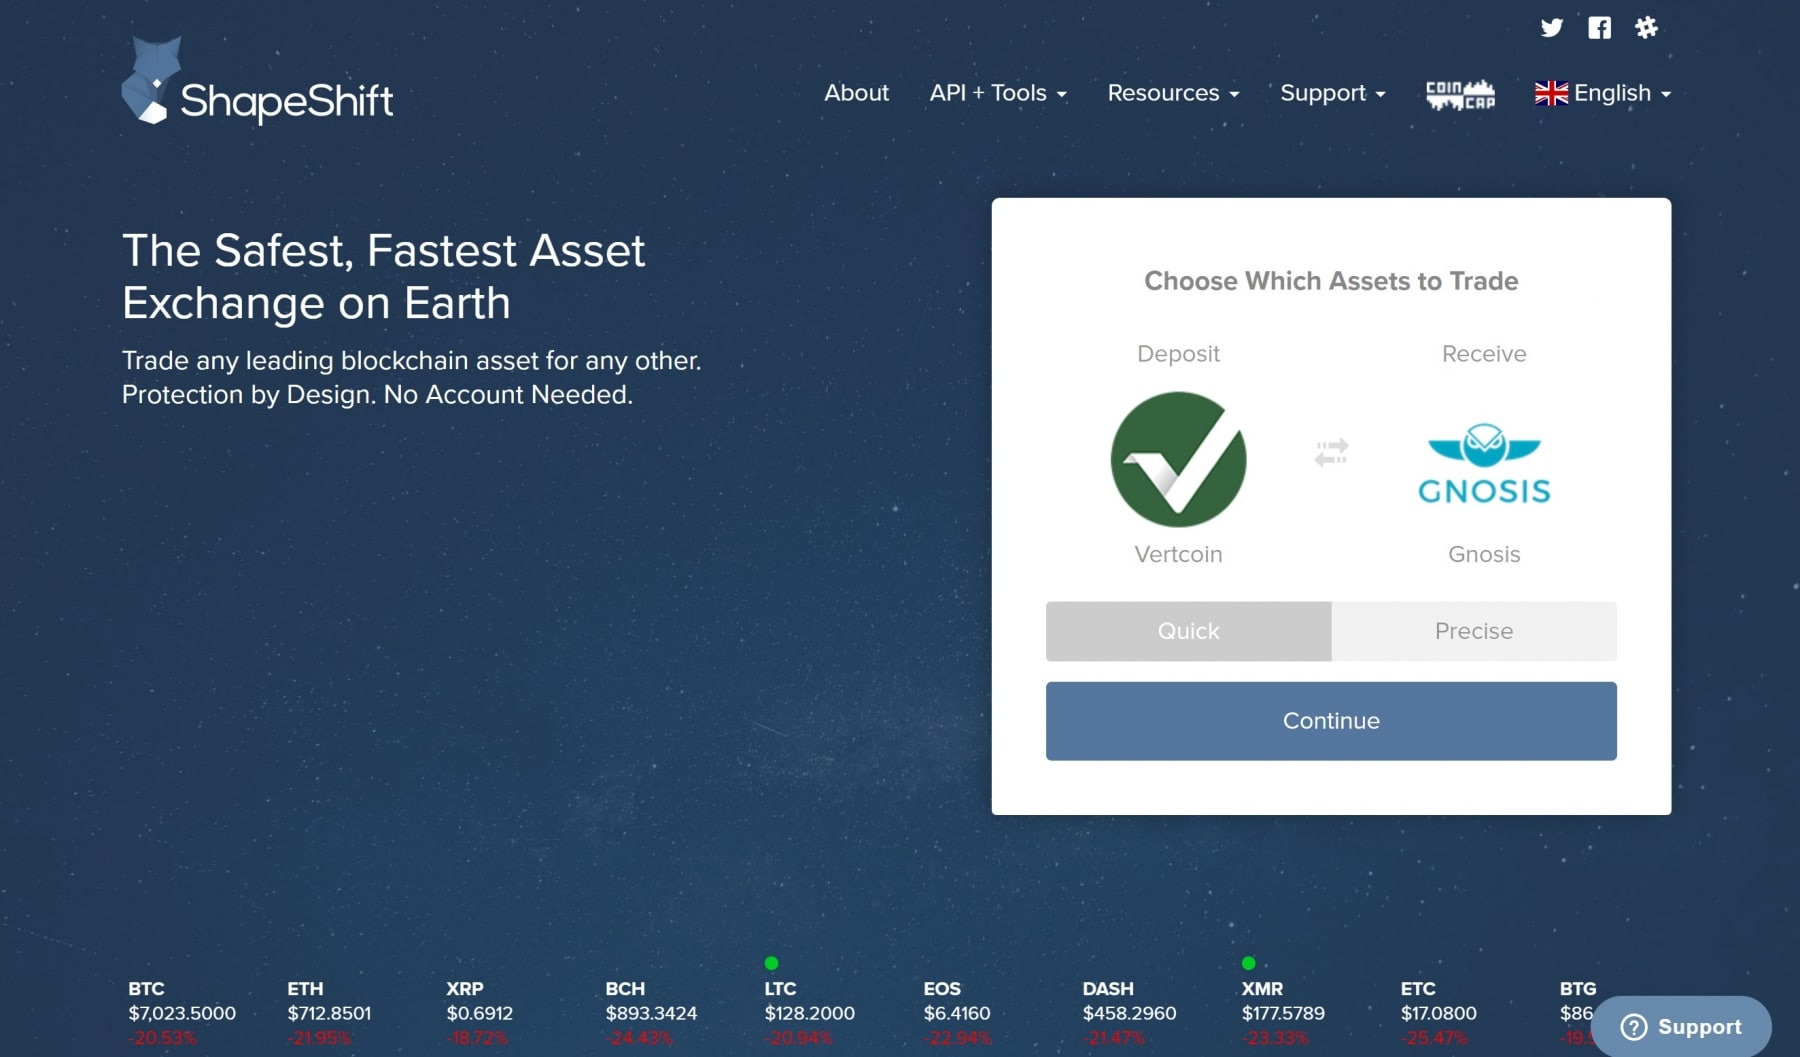 shapeshift website review